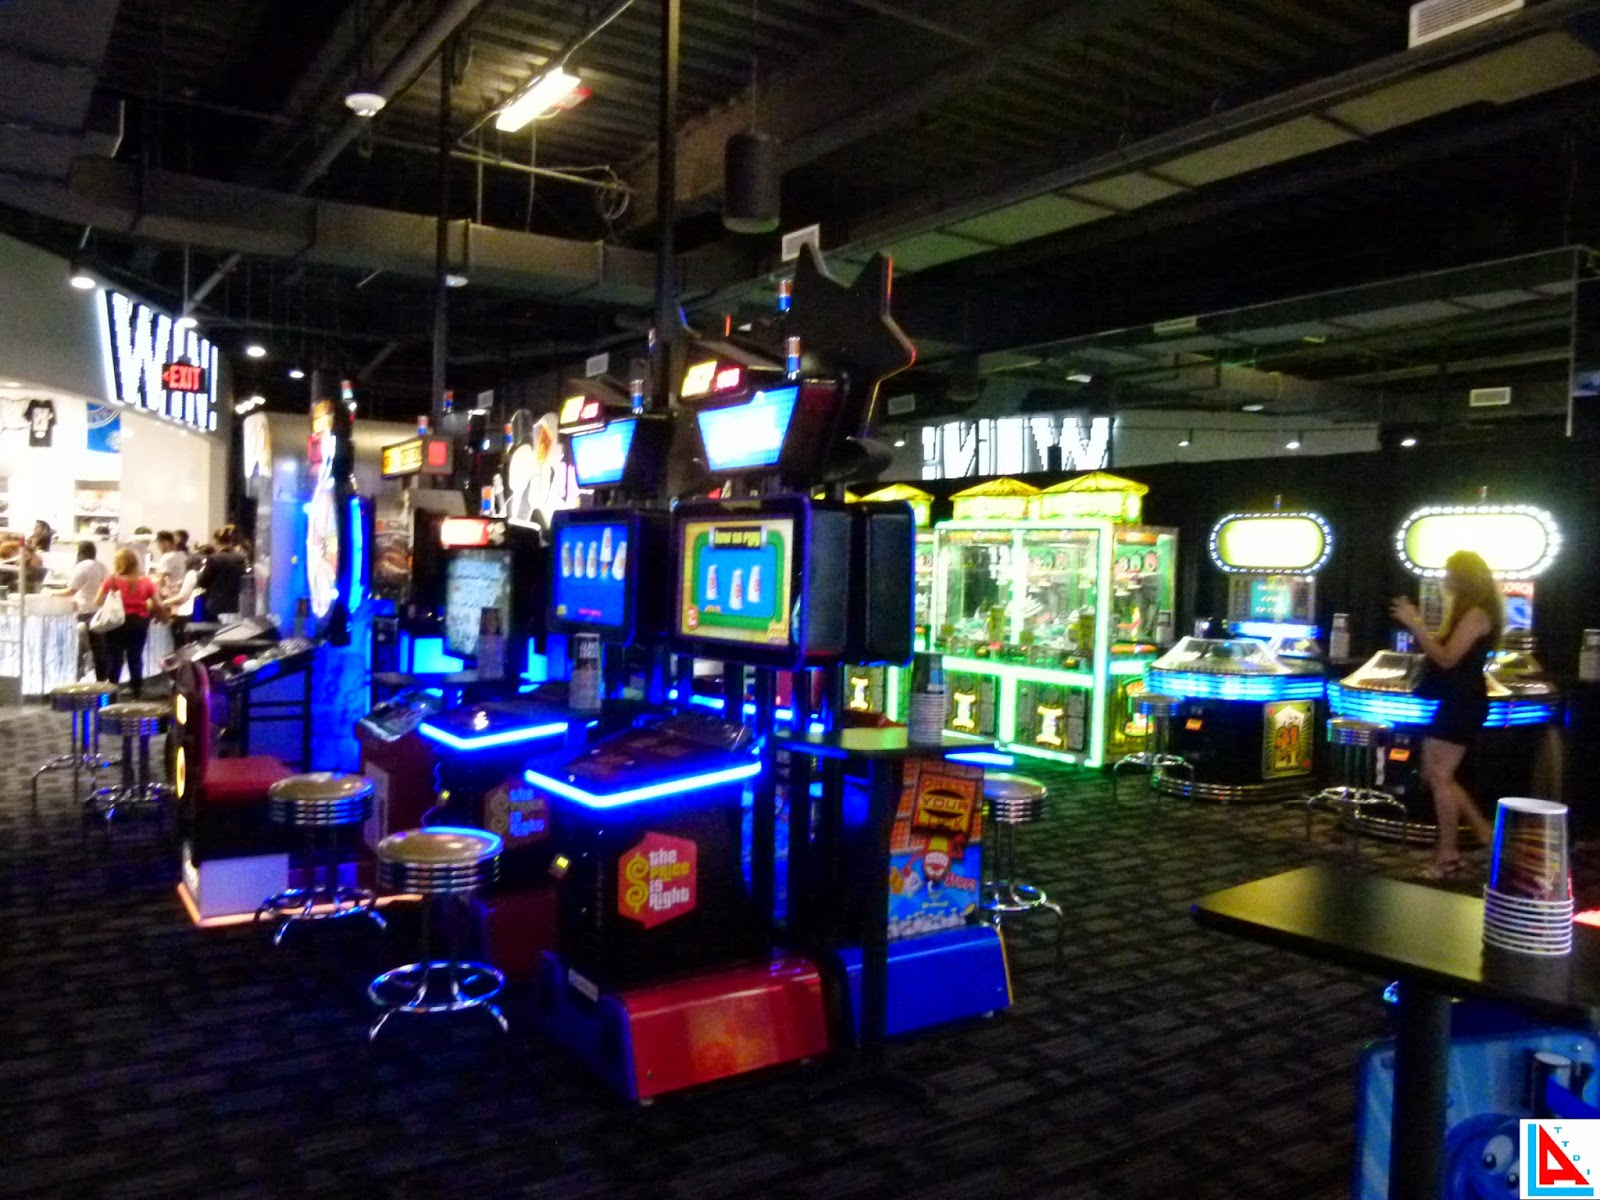 Dave and busters printable coupons january 2013 - The Place Is Going To Have A Lot Of Pictures Of Celebs Playing Video Games